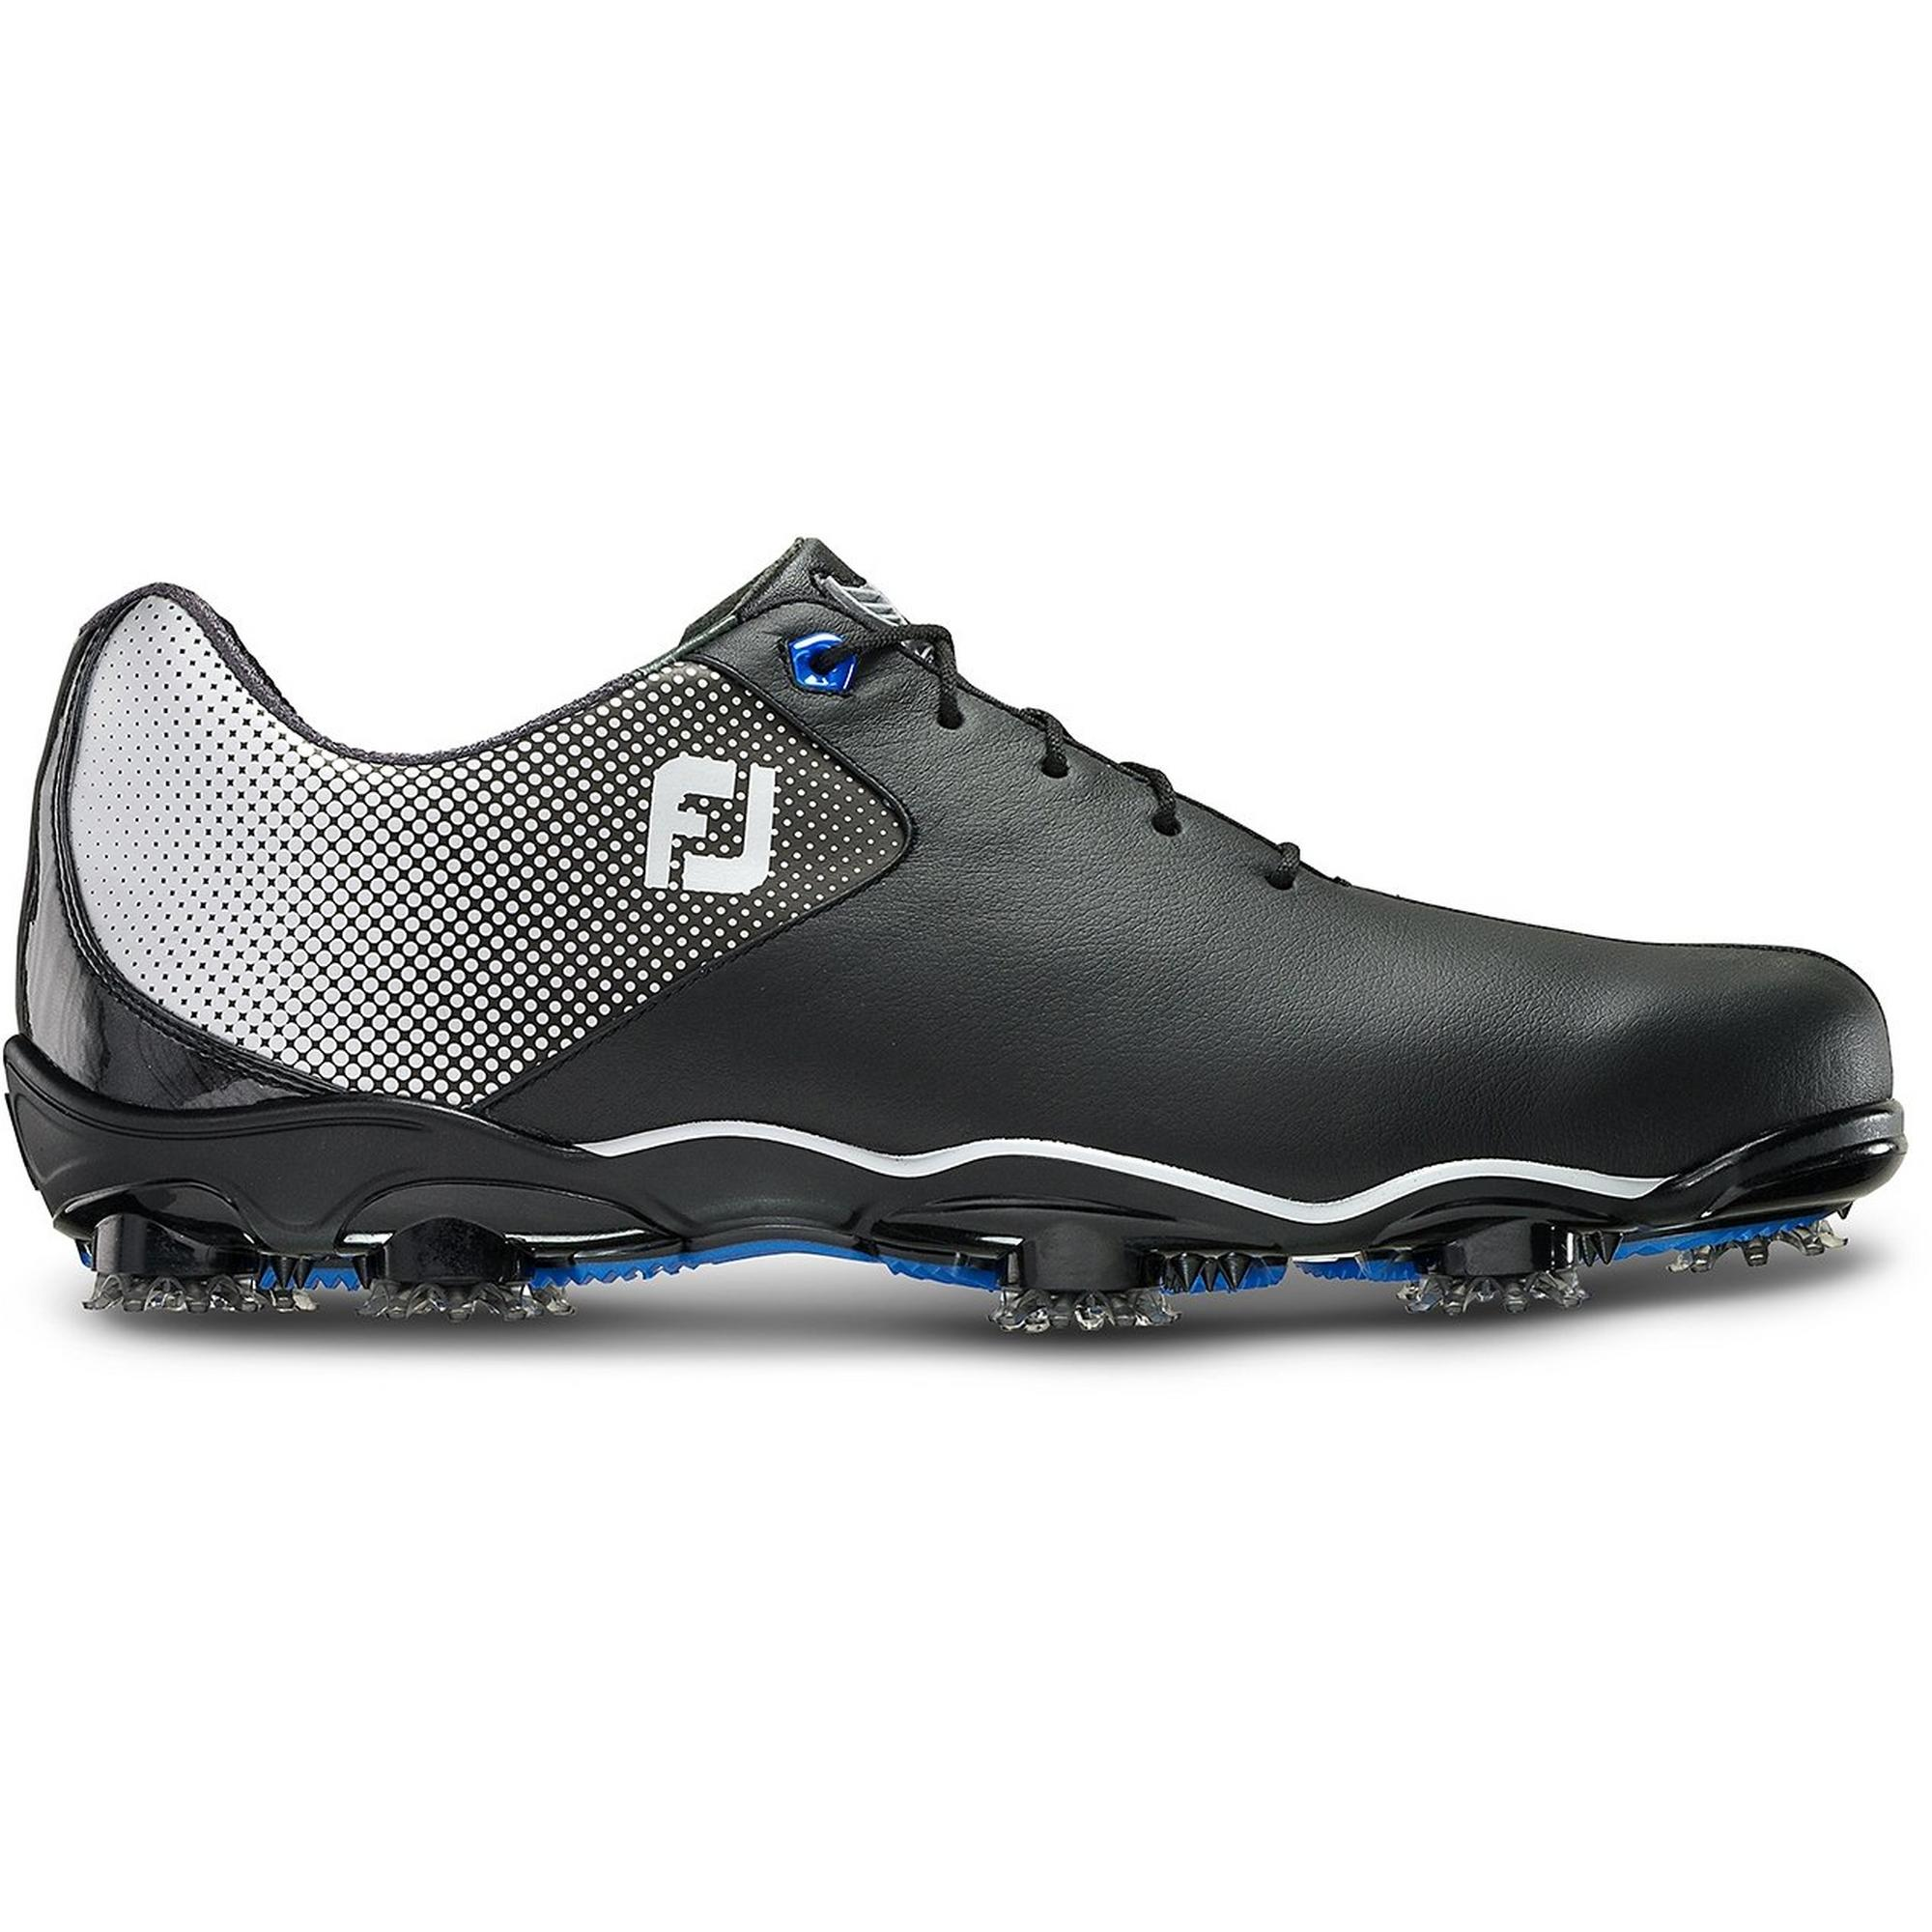 Men's DNA Helix Spiked Golf Shoe - Black